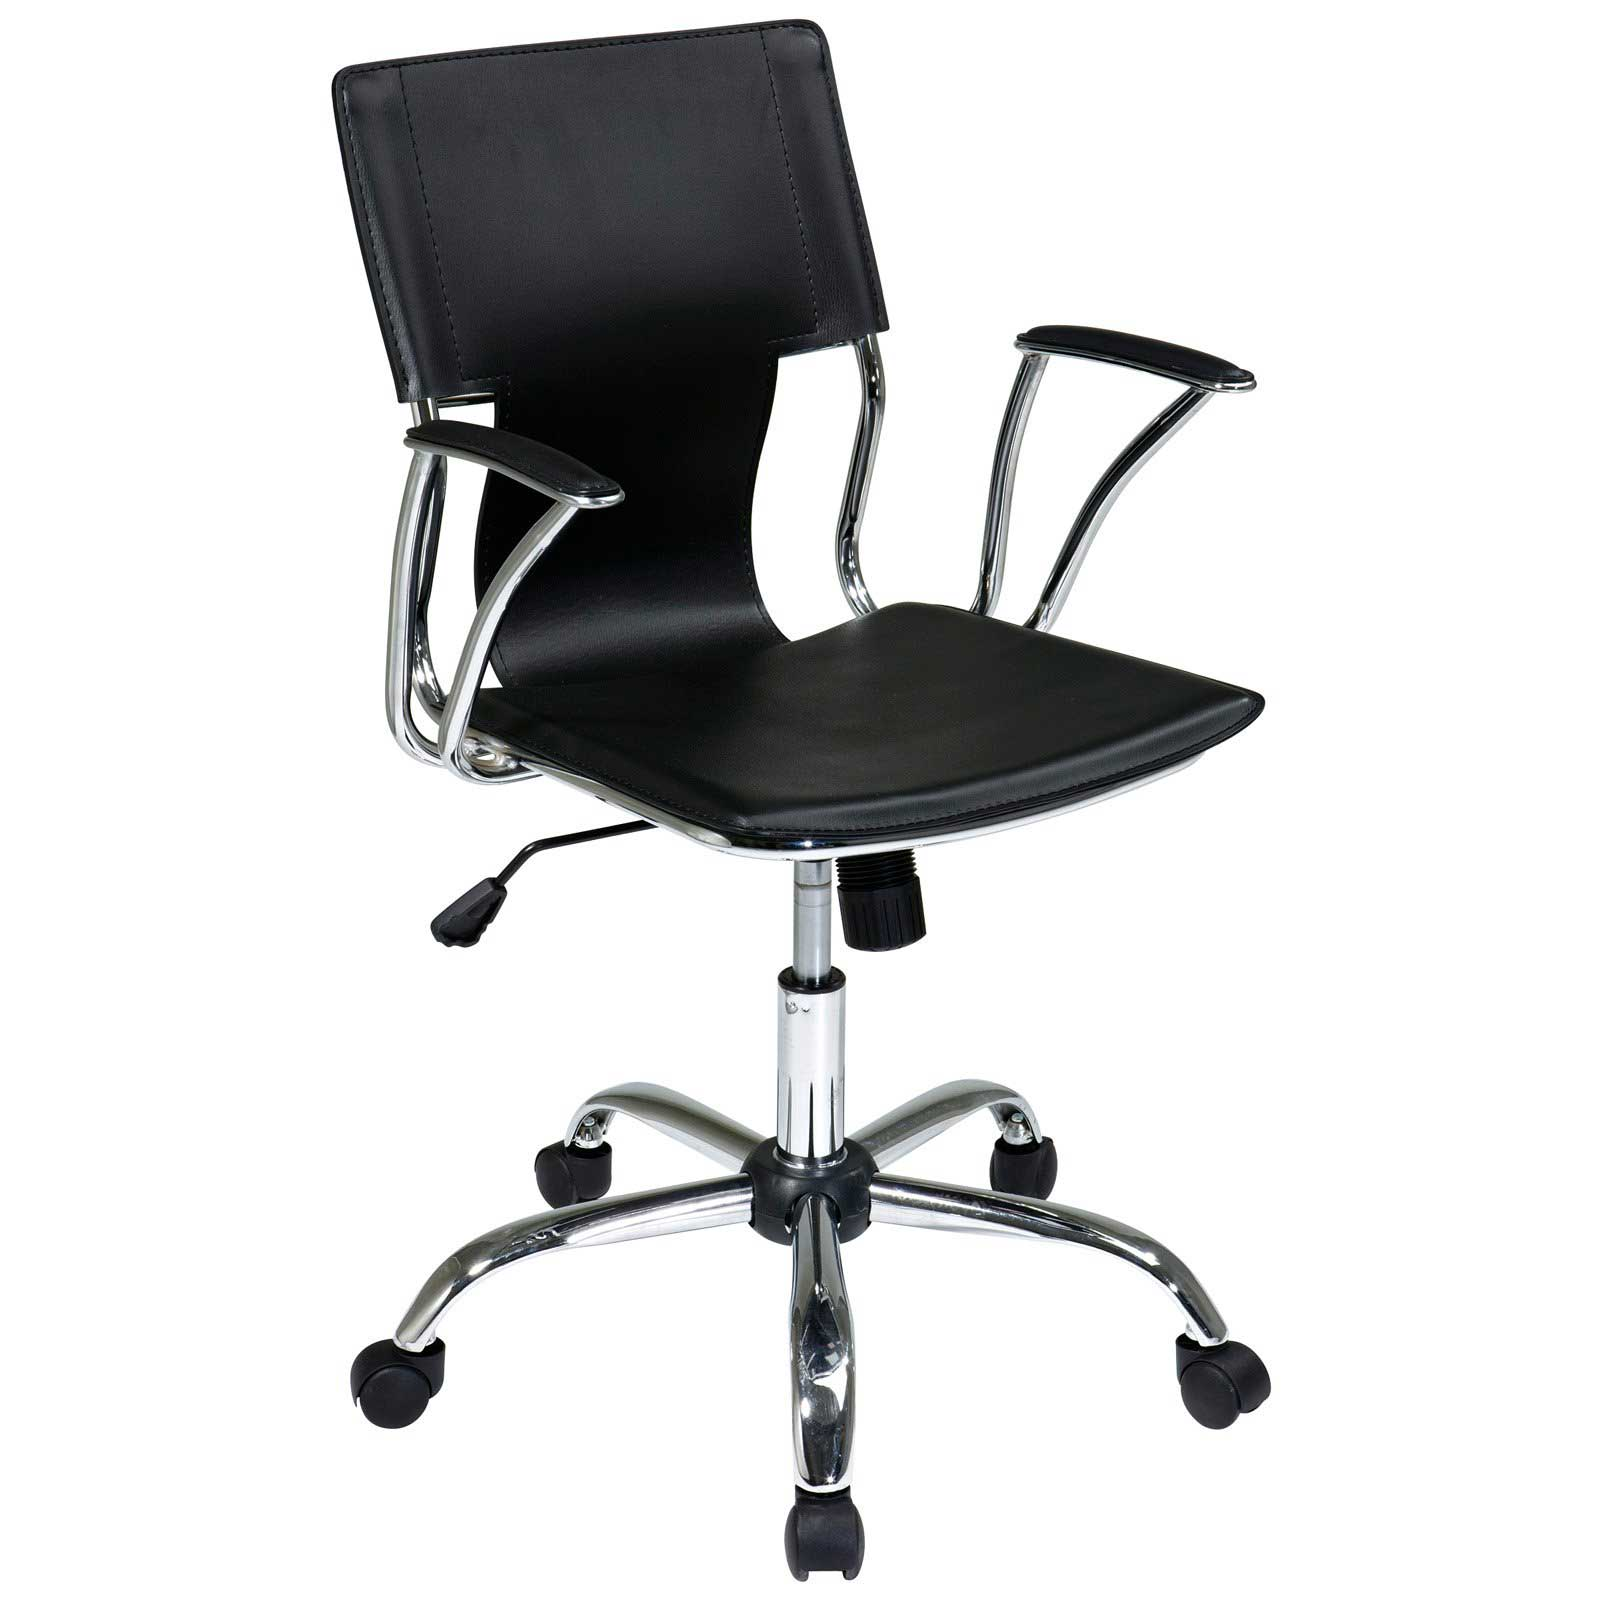 Office Star Ergonomic Black Office Chair Avenue Six Series